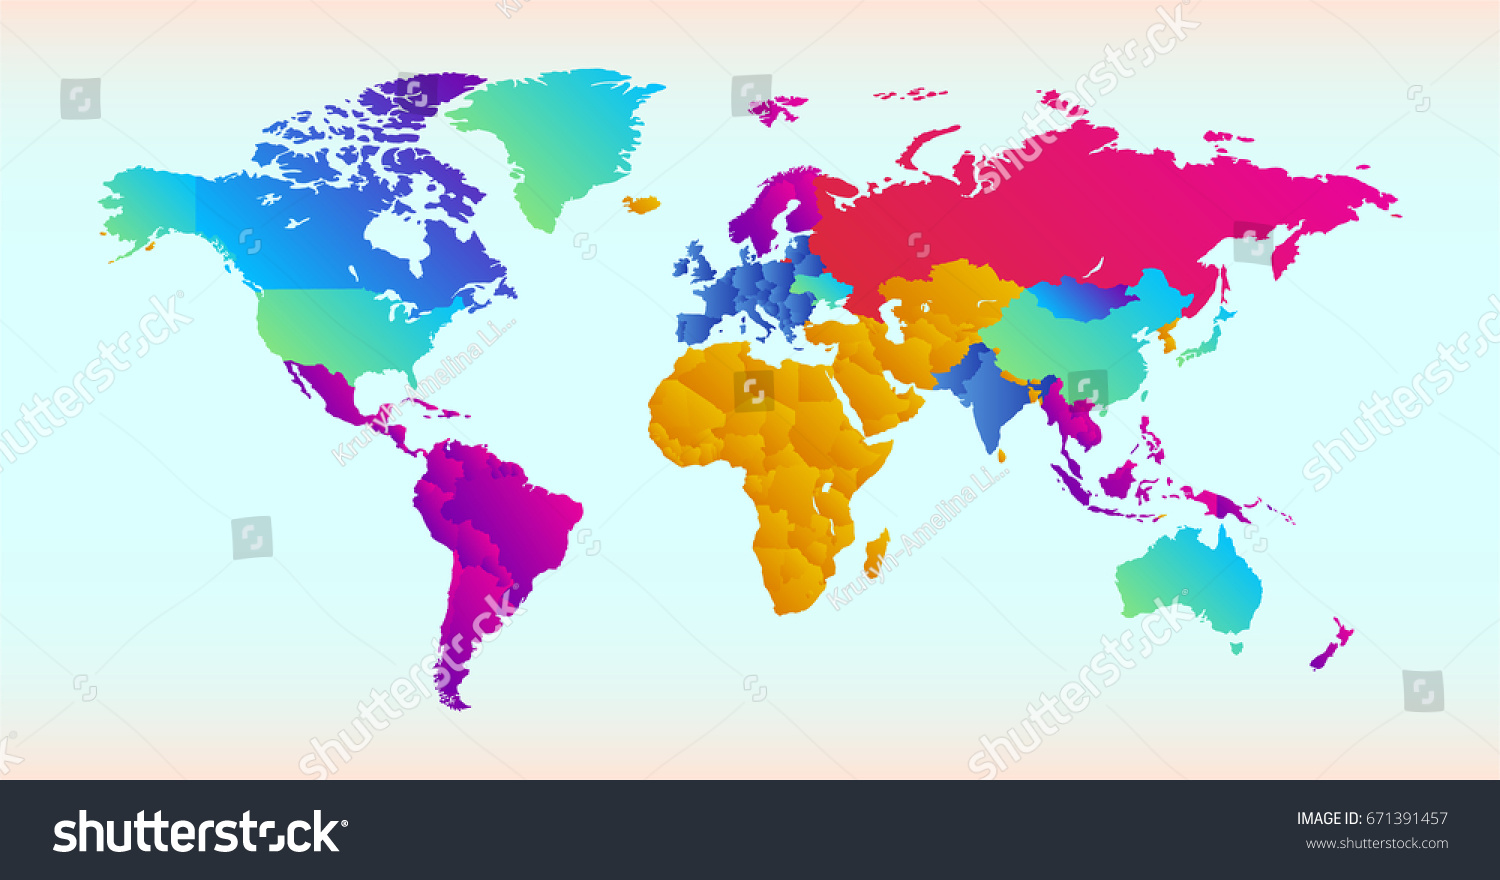 Vector illustration world map different colored stock vector vector illustration of world map with different colored countries and continents gumiabroncs Images